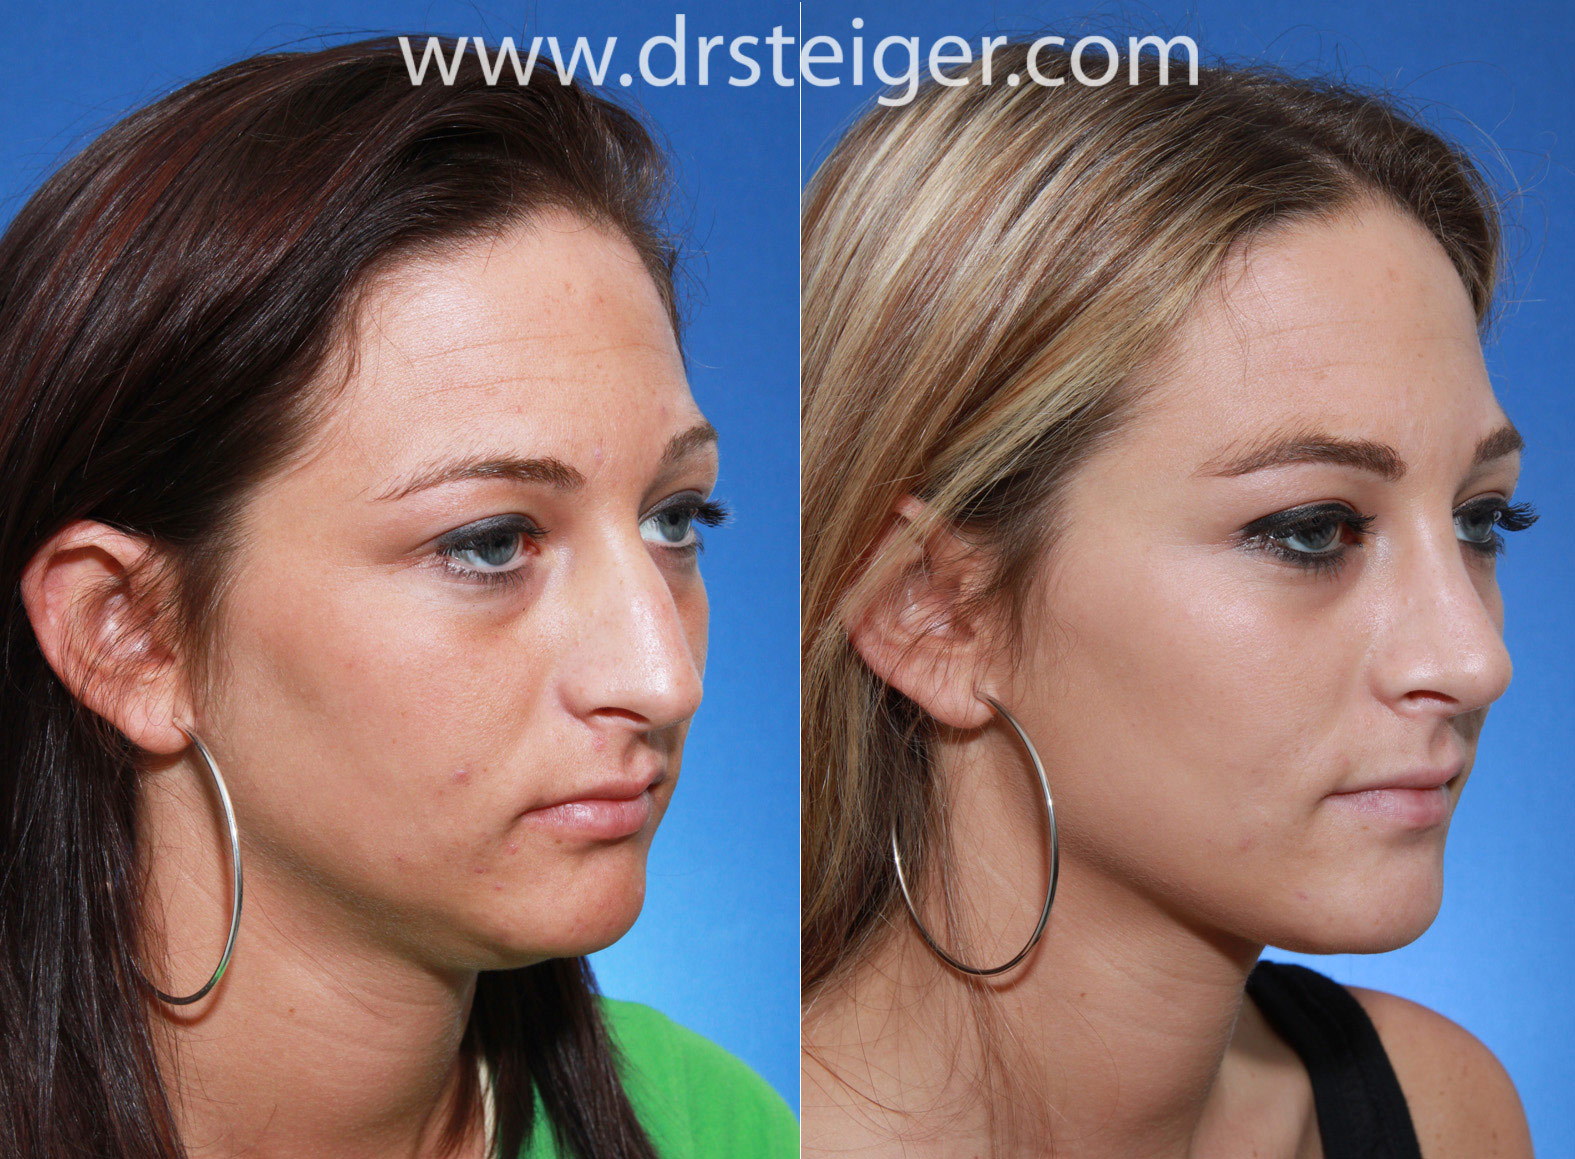 Rhinoplasty Before and After Photos   Steiger Facial Plastic